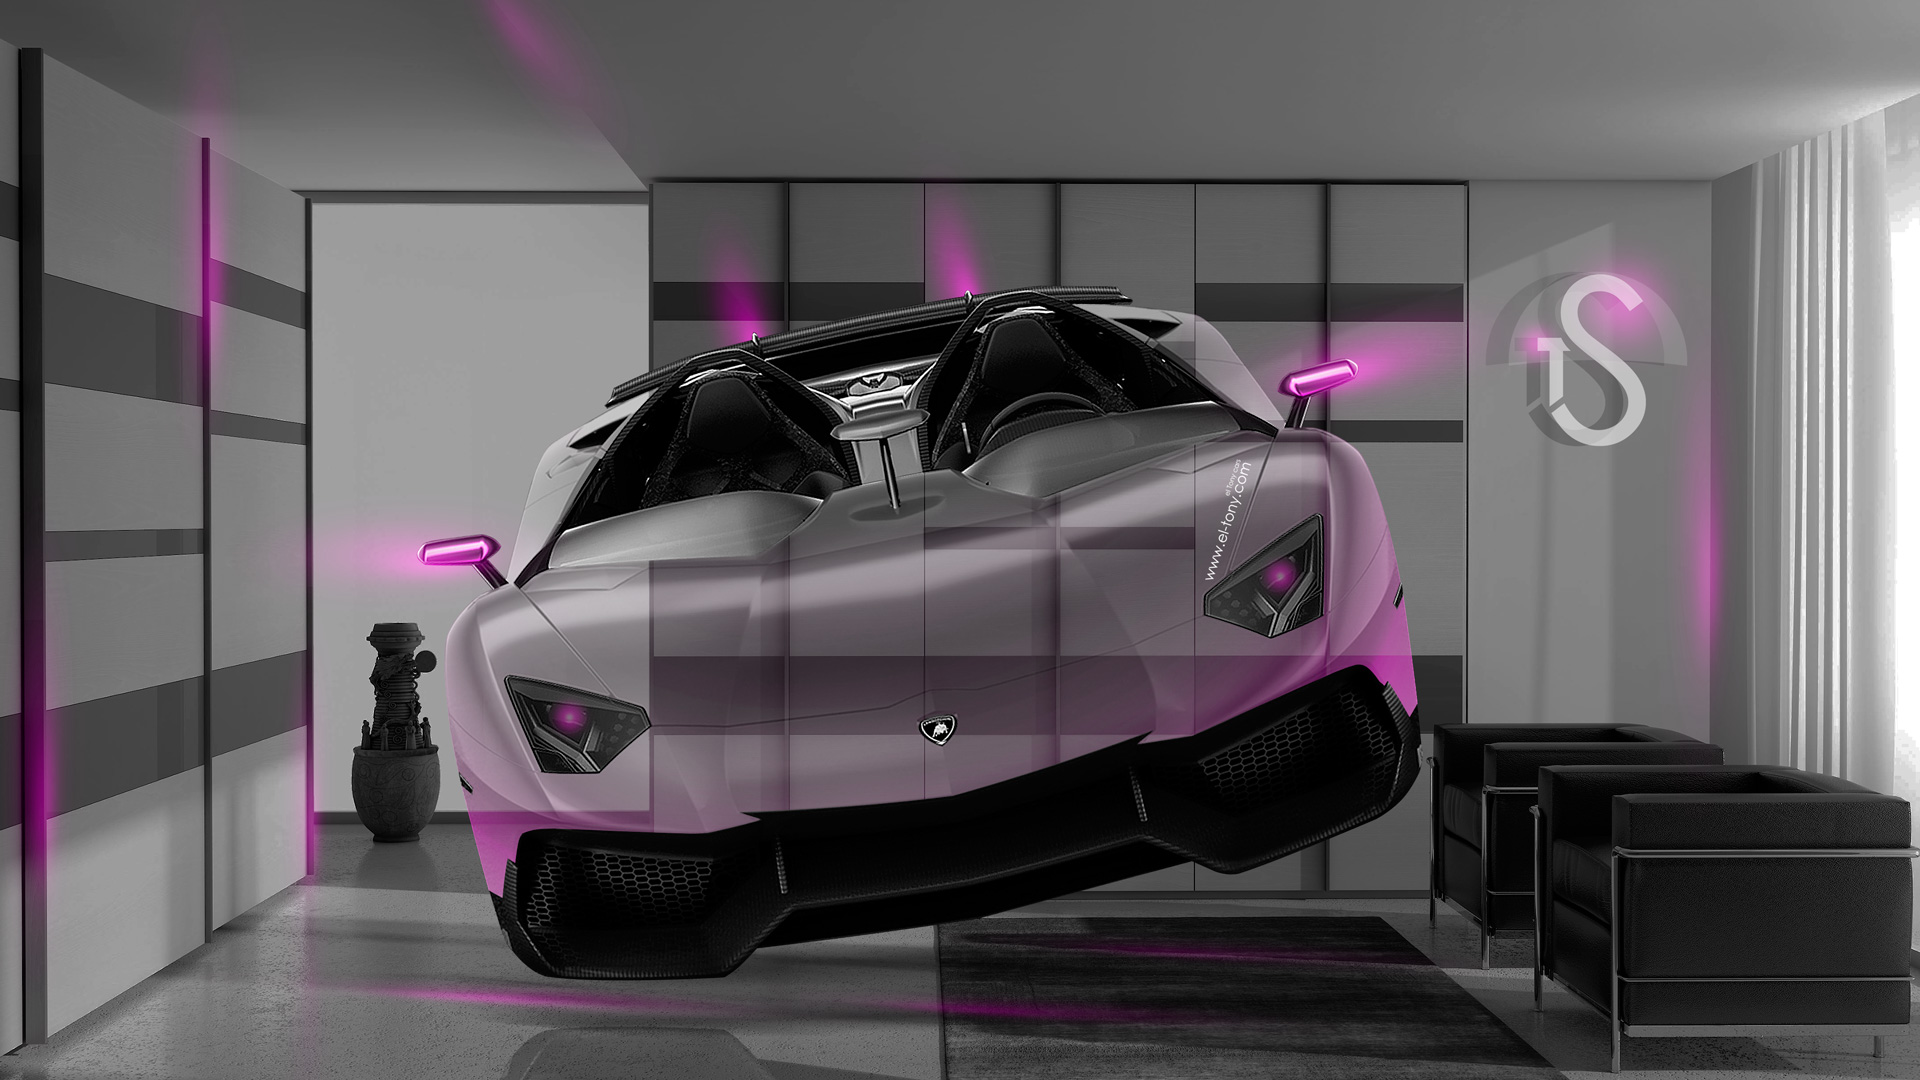 lamborghini aventador j fantasy crystal home fly car